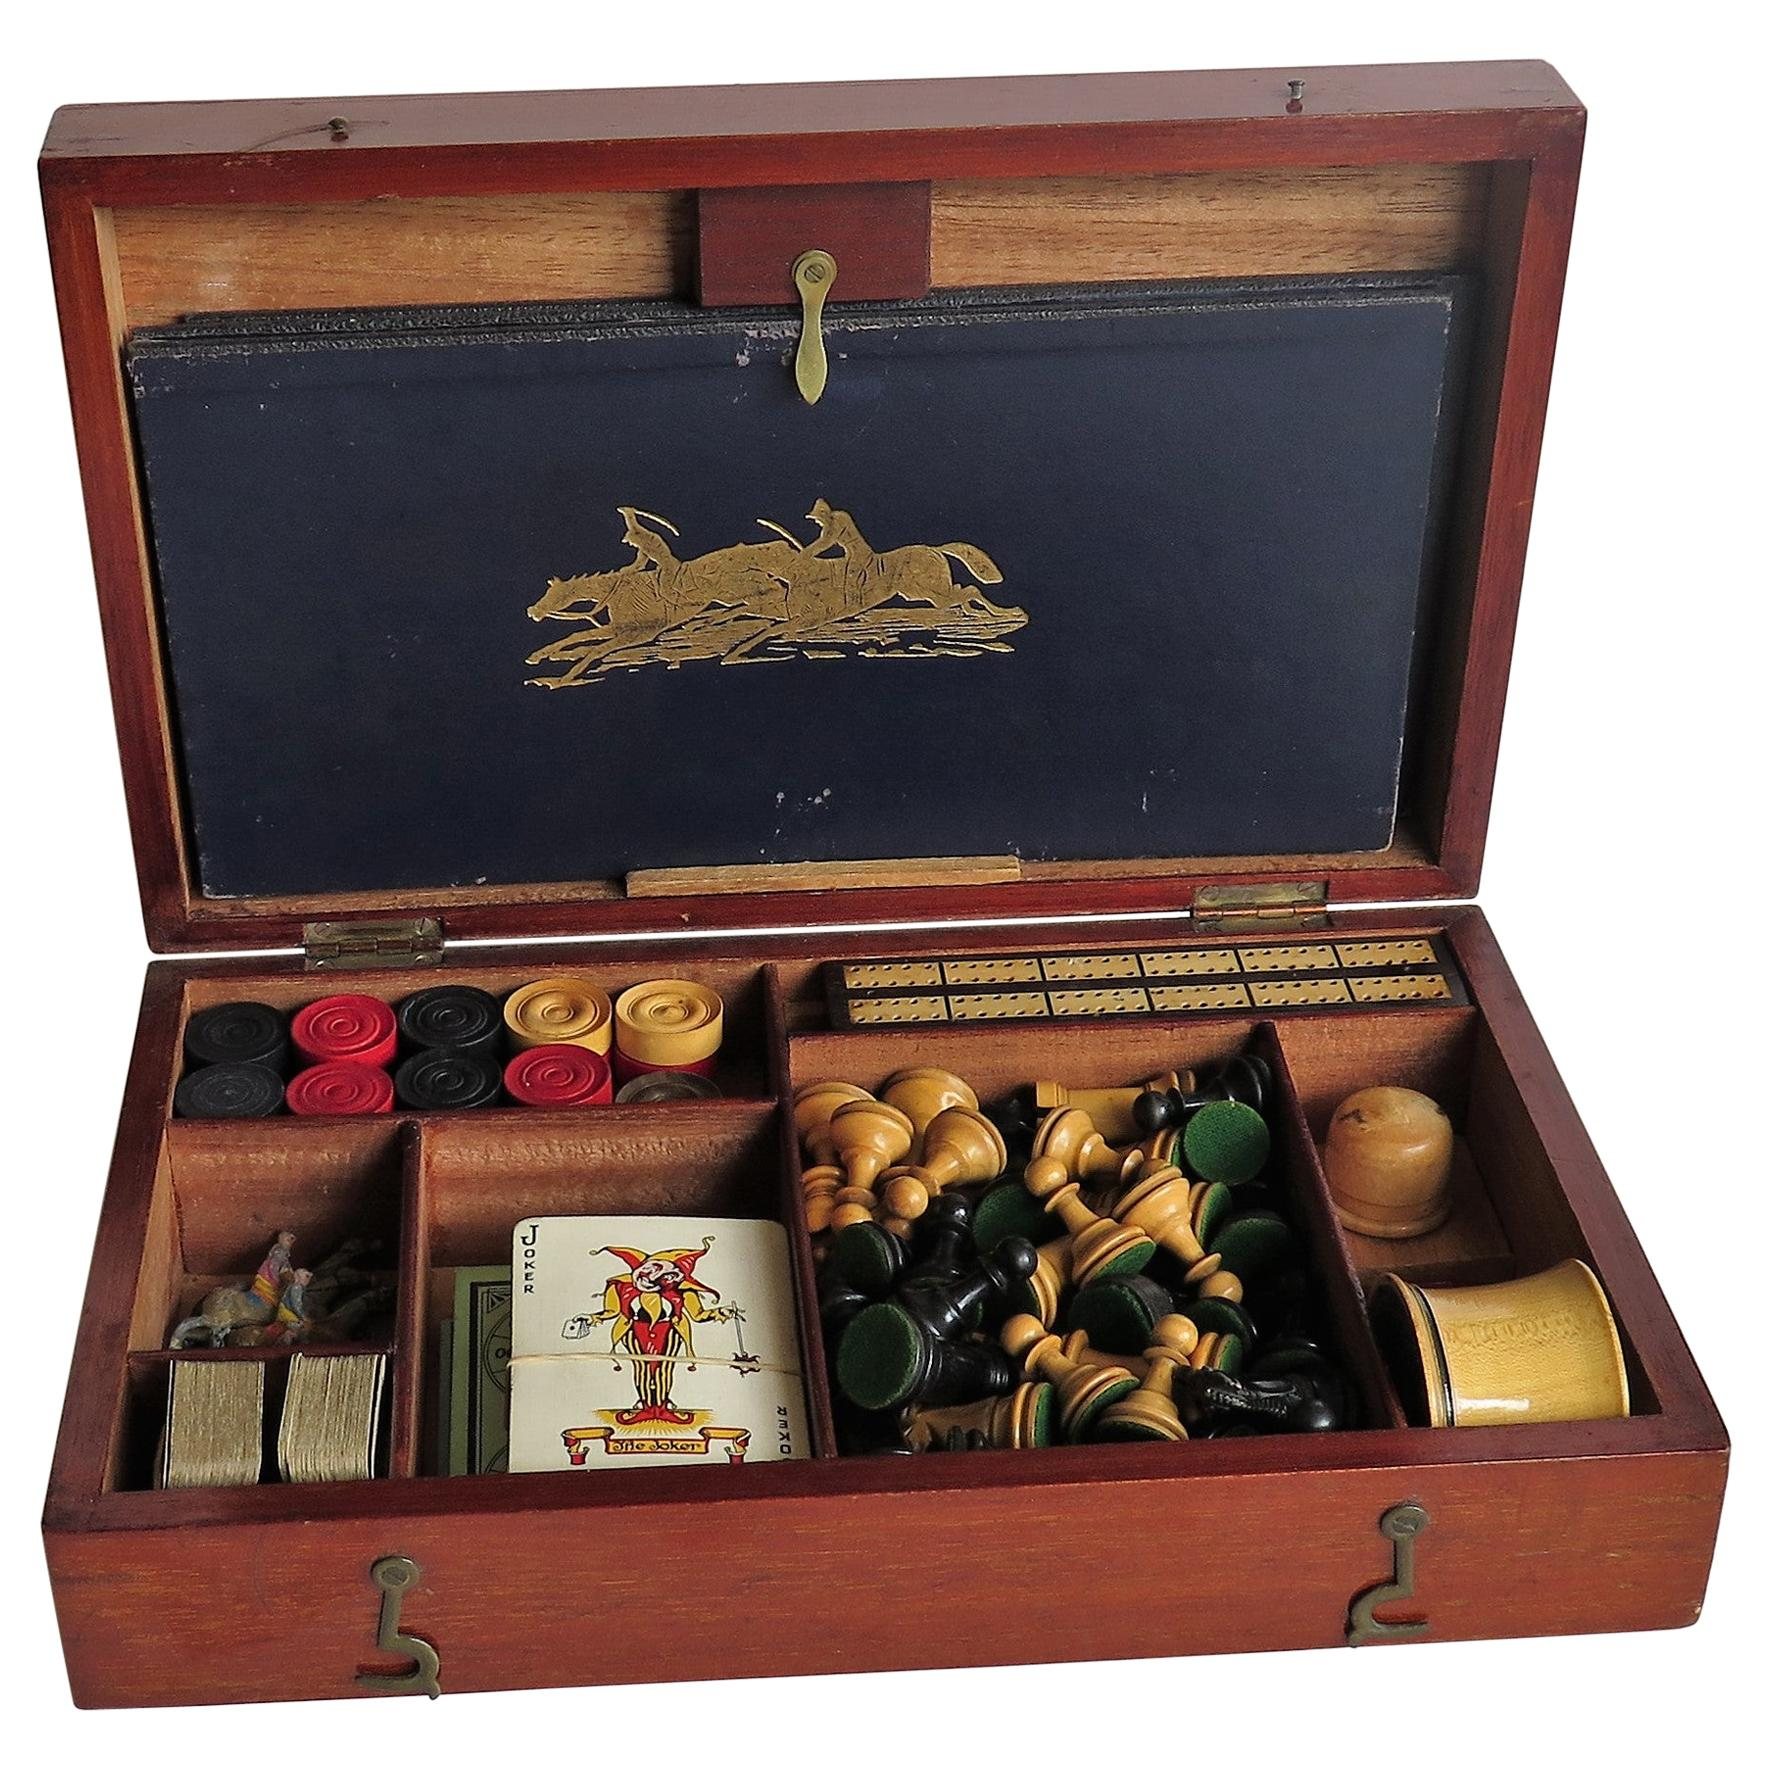 19th Century Complete Games Compendium in Hardwood Jointed Box Many Games